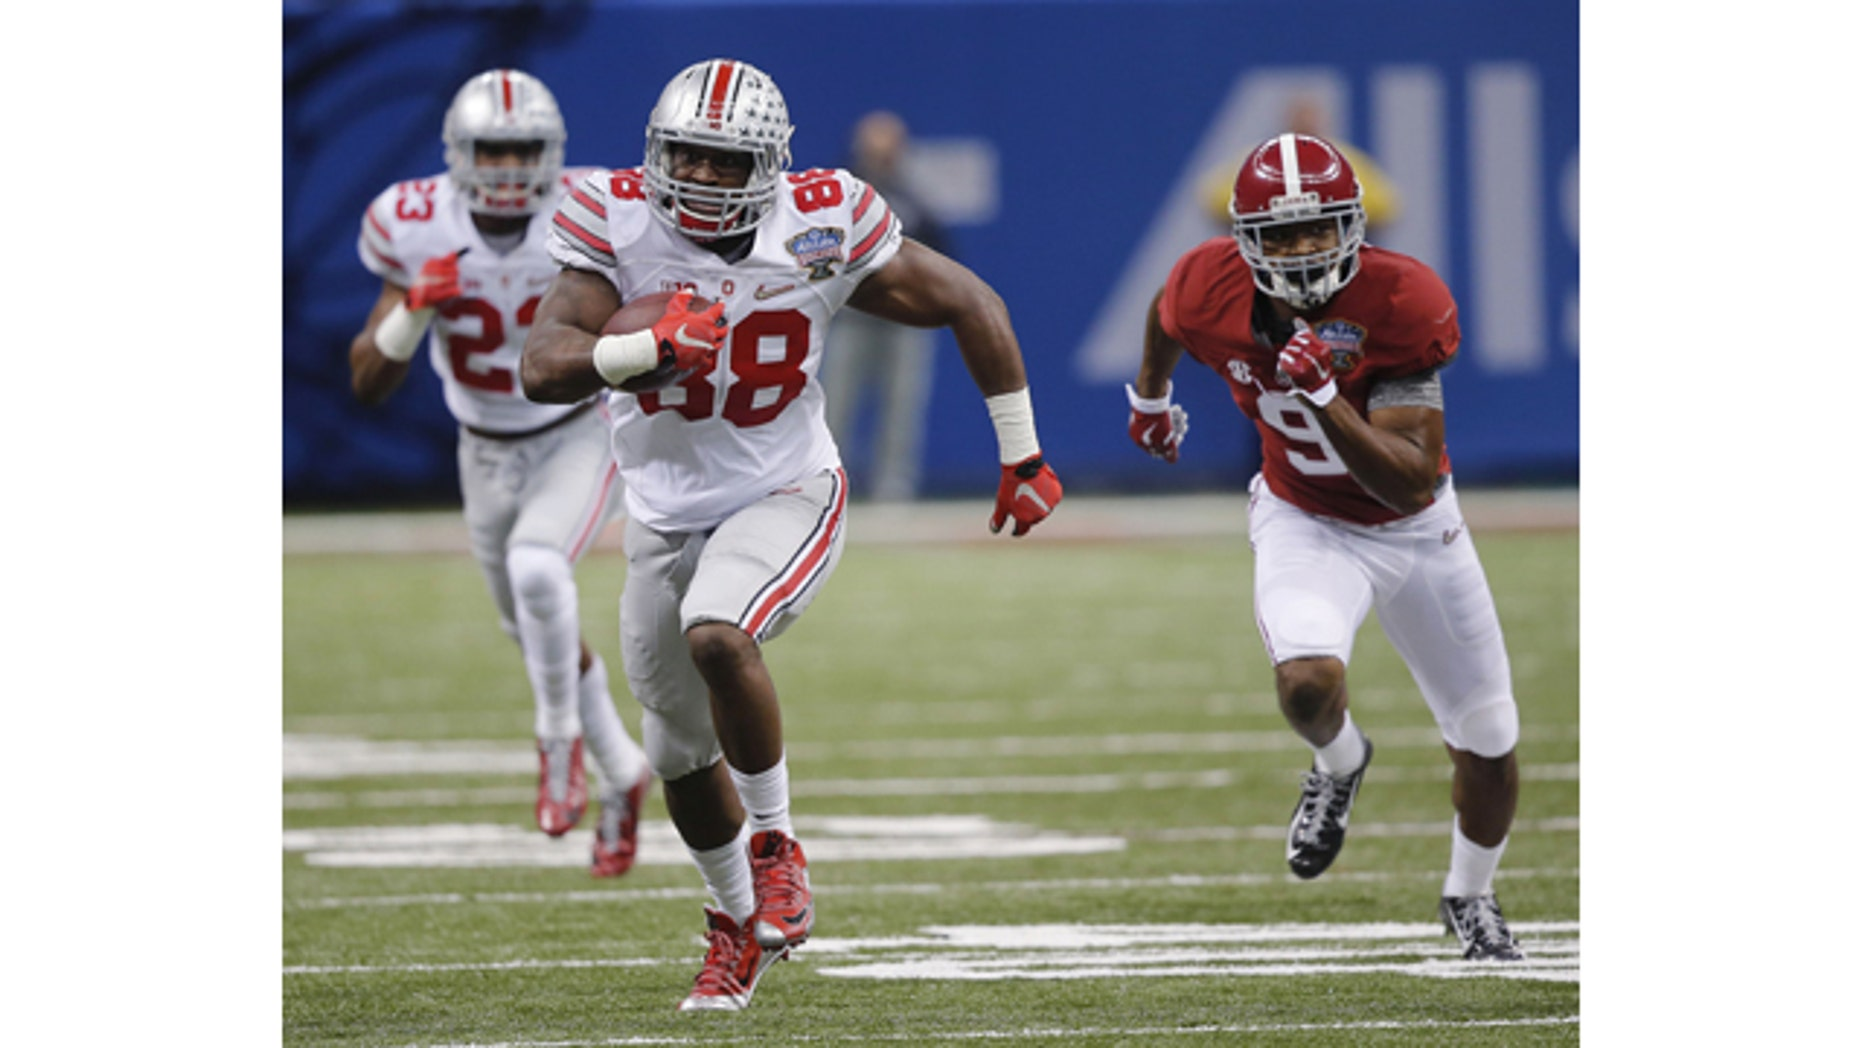 Jan. 1, 2015: Ohio State defensive lineman Steve Miller (88) returns an interception against Alabama in the second half of the Sugar Bowl NCAA college football playoff semifinal game in New Orleans. (AP Photo/Bill Haber)